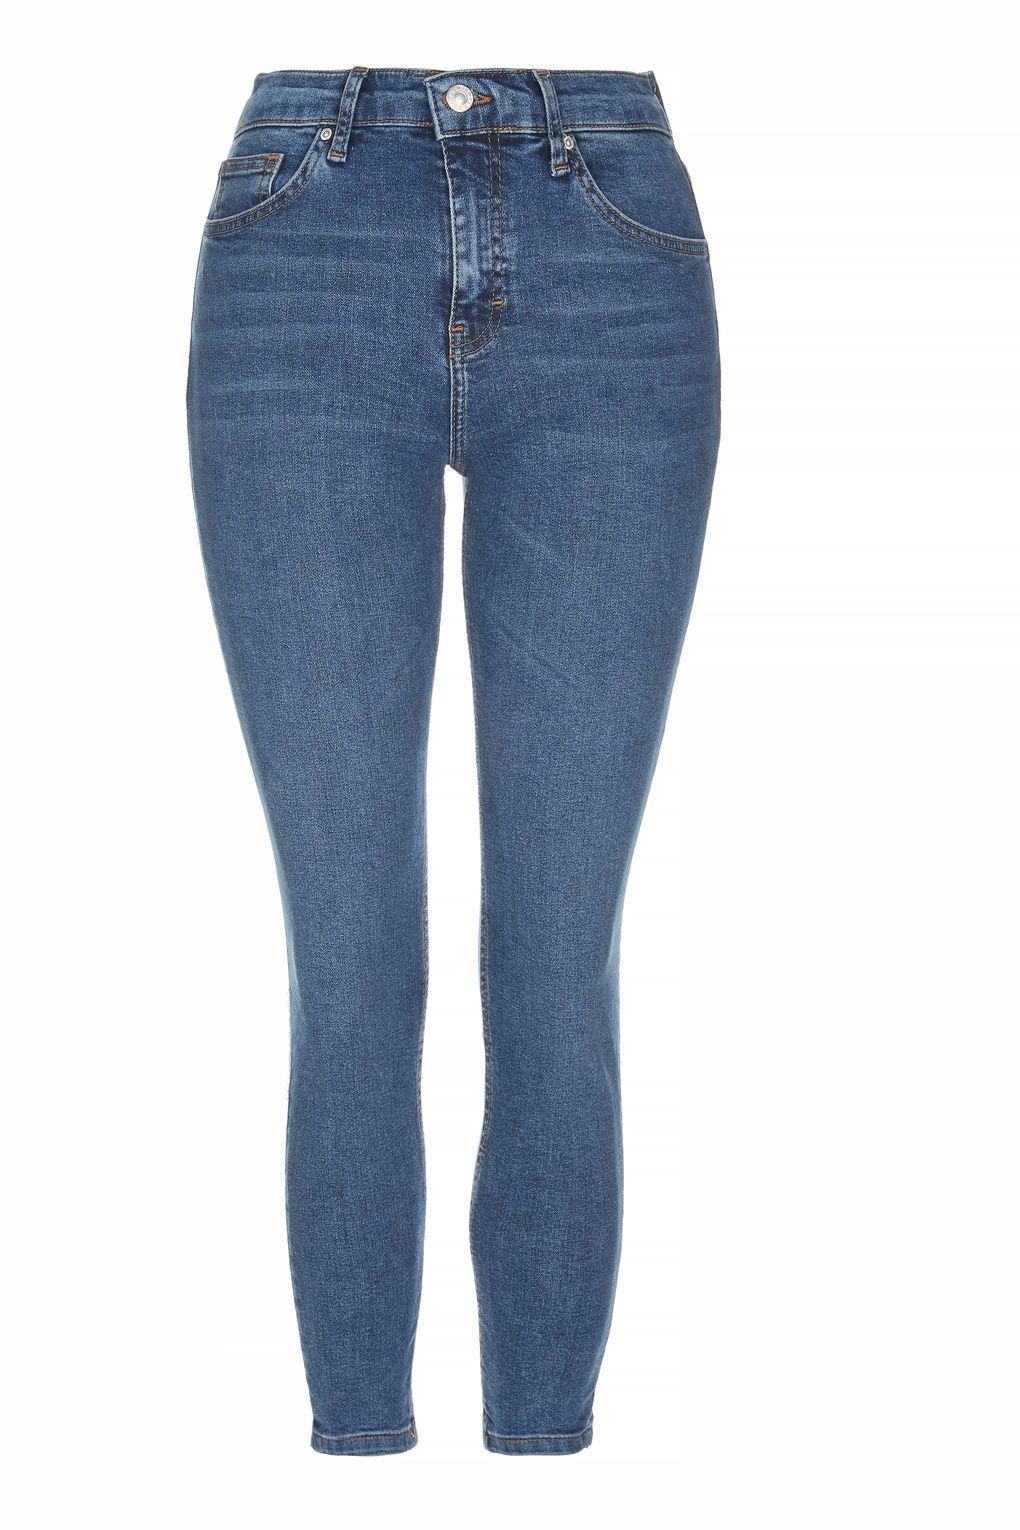 Topshop Petite Moto Hem Embroidered Jamie Jeans In Blue  Lyst